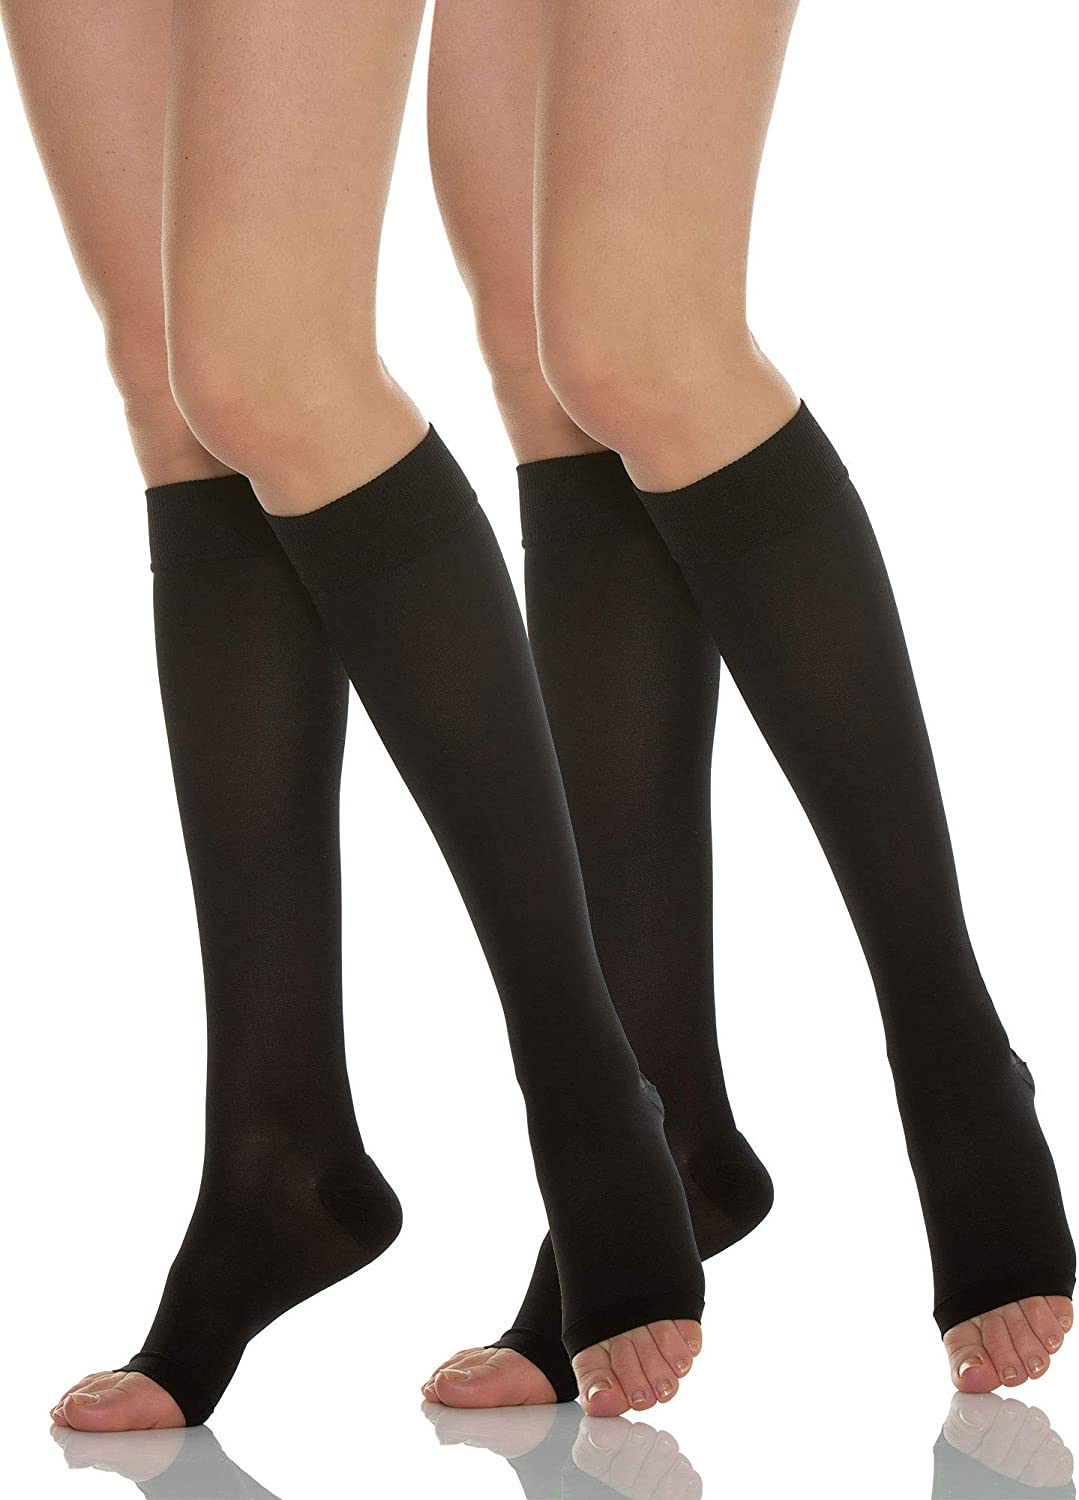 Relaxsan Basic 850A 2 Pairs Black New New Free Shipping products world's highest quality popular Sz.3 - open-toe moderate